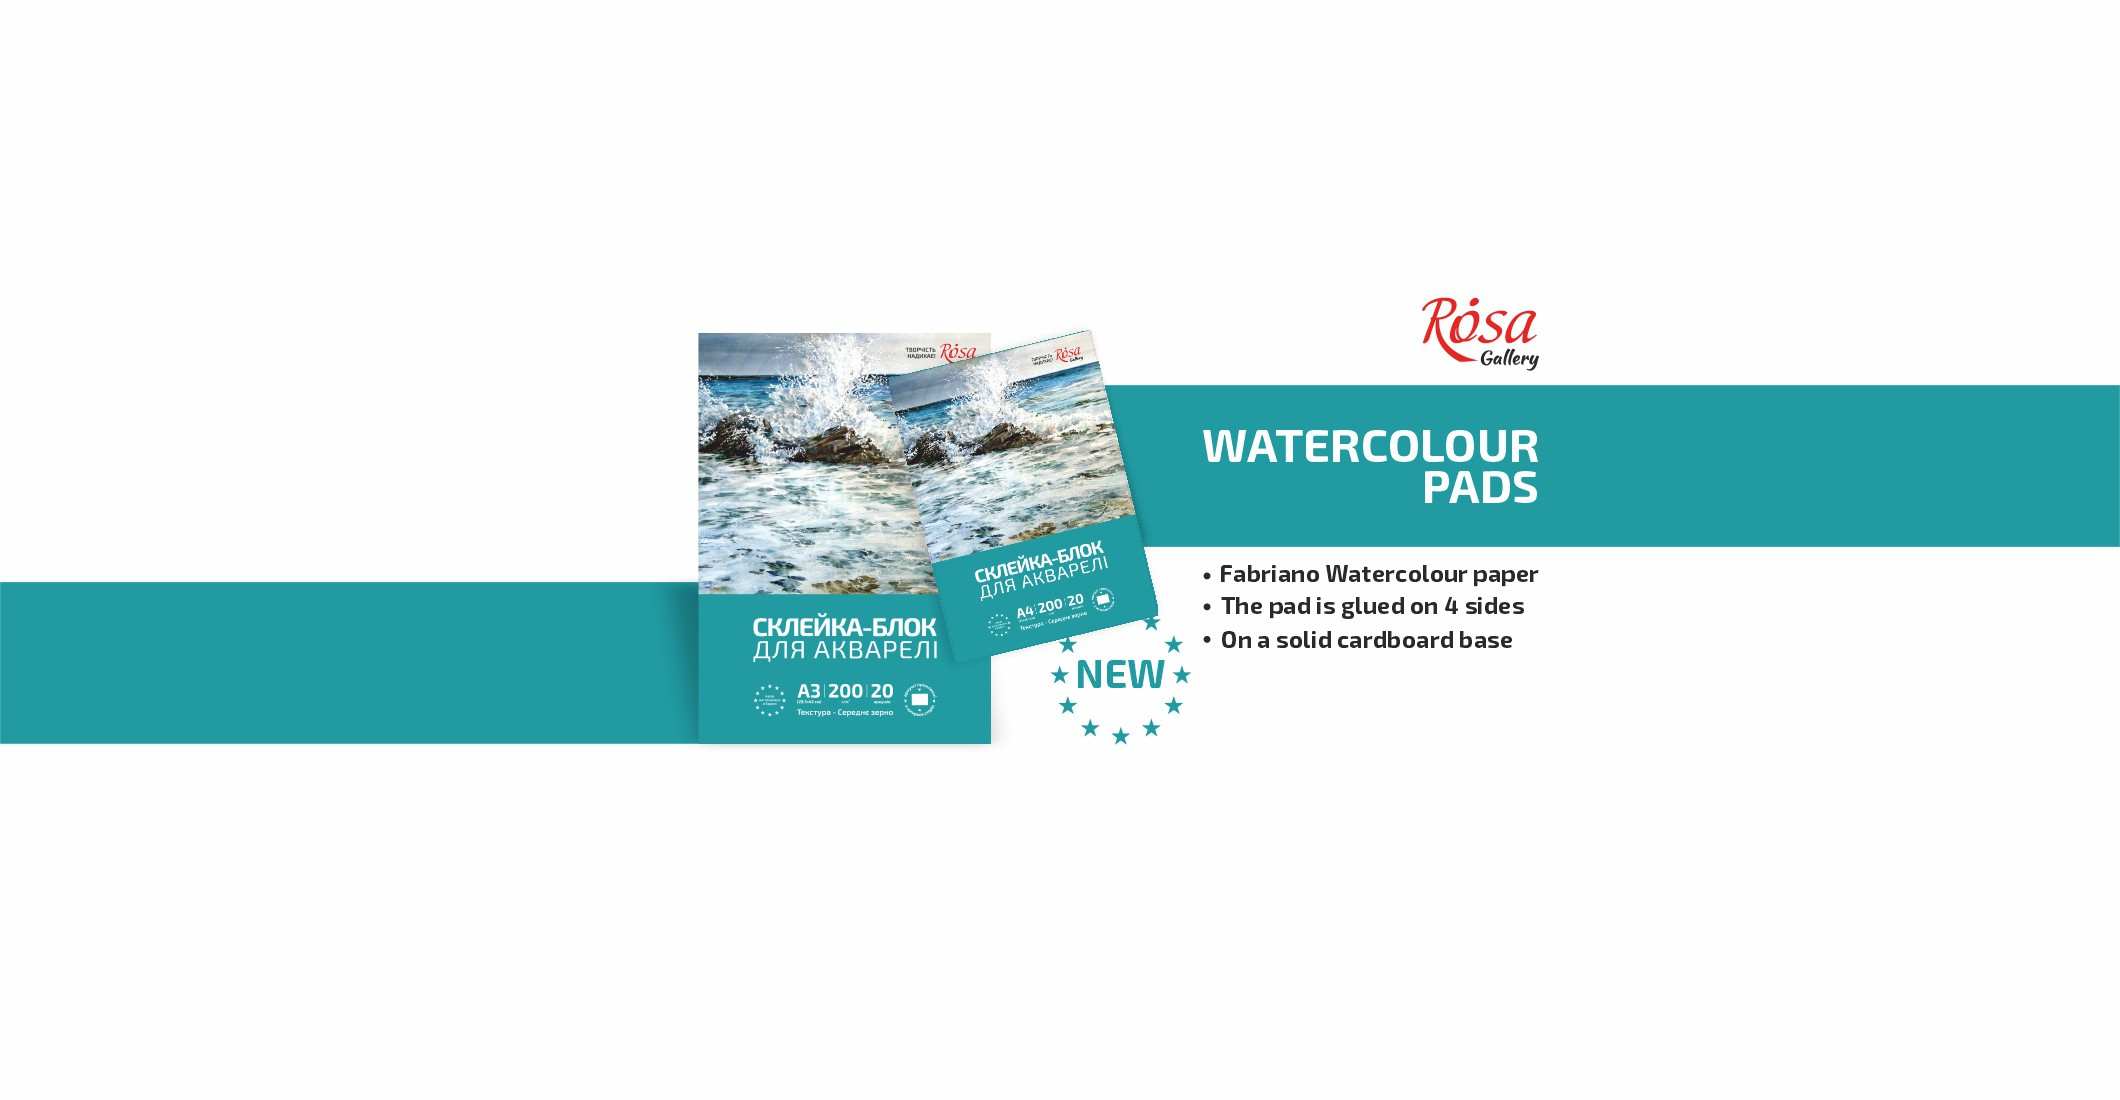 ROSA Gallery Watercolour Pads